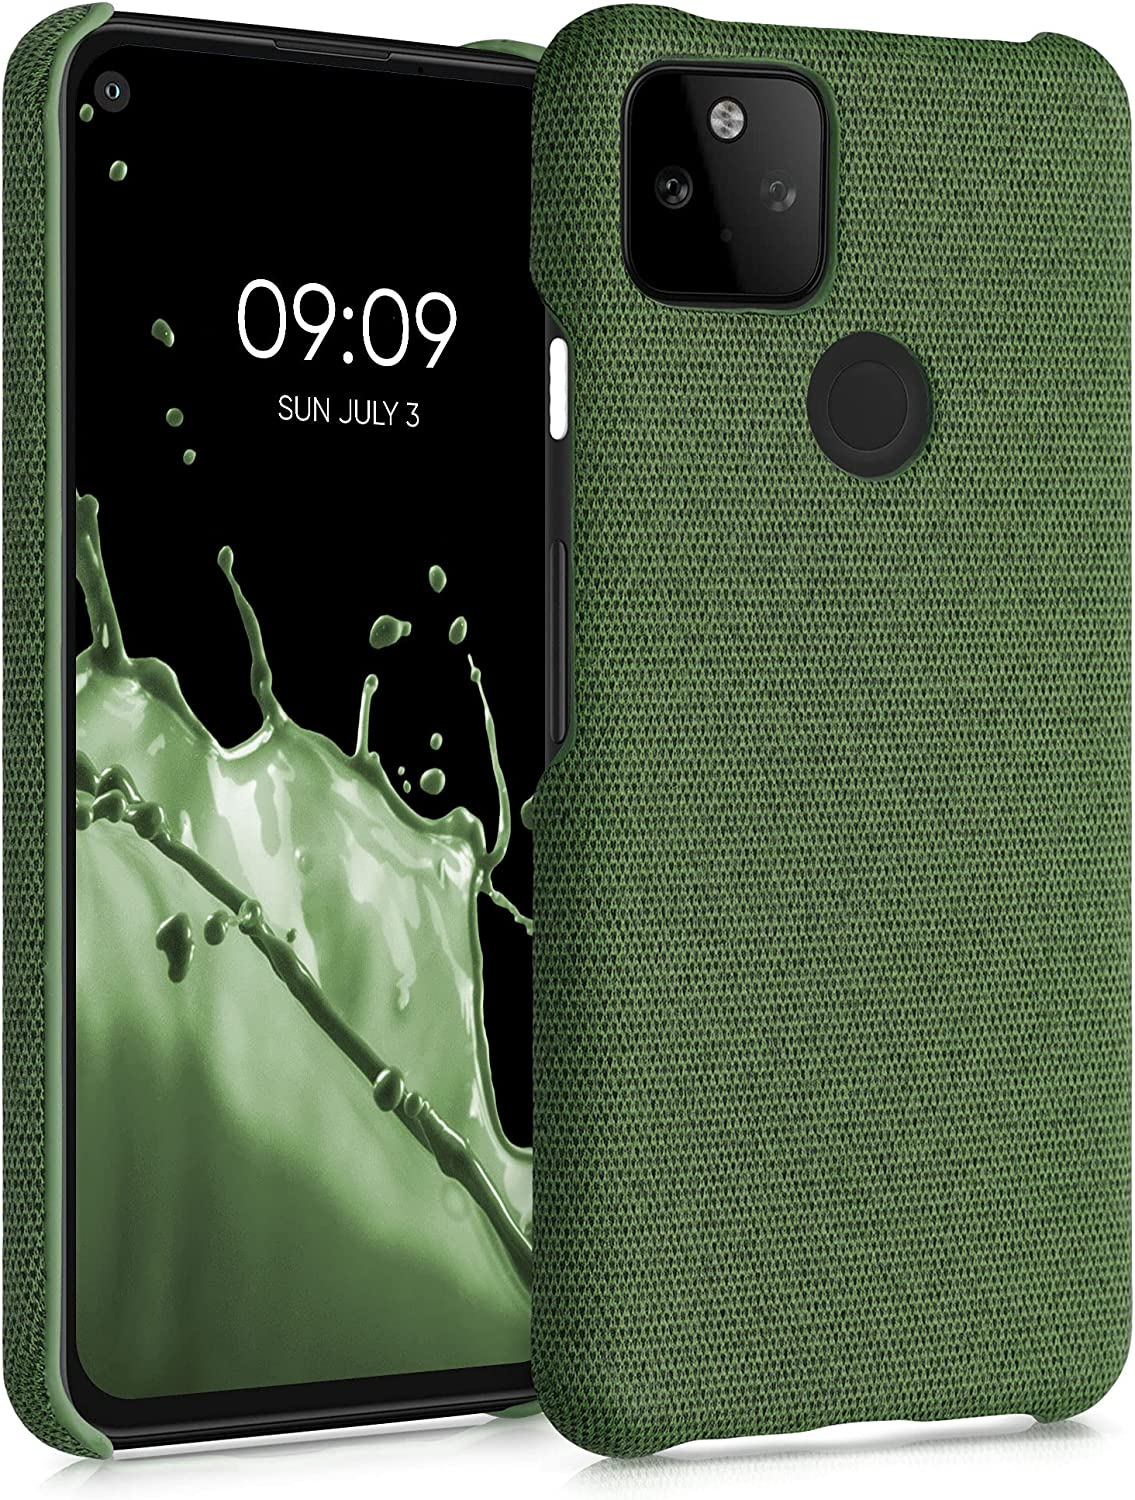 kwmobile Fabric Case Compatible with Google Pixel 5a 5G - Case Hard Protective Phone Cover with Material Texture - Green